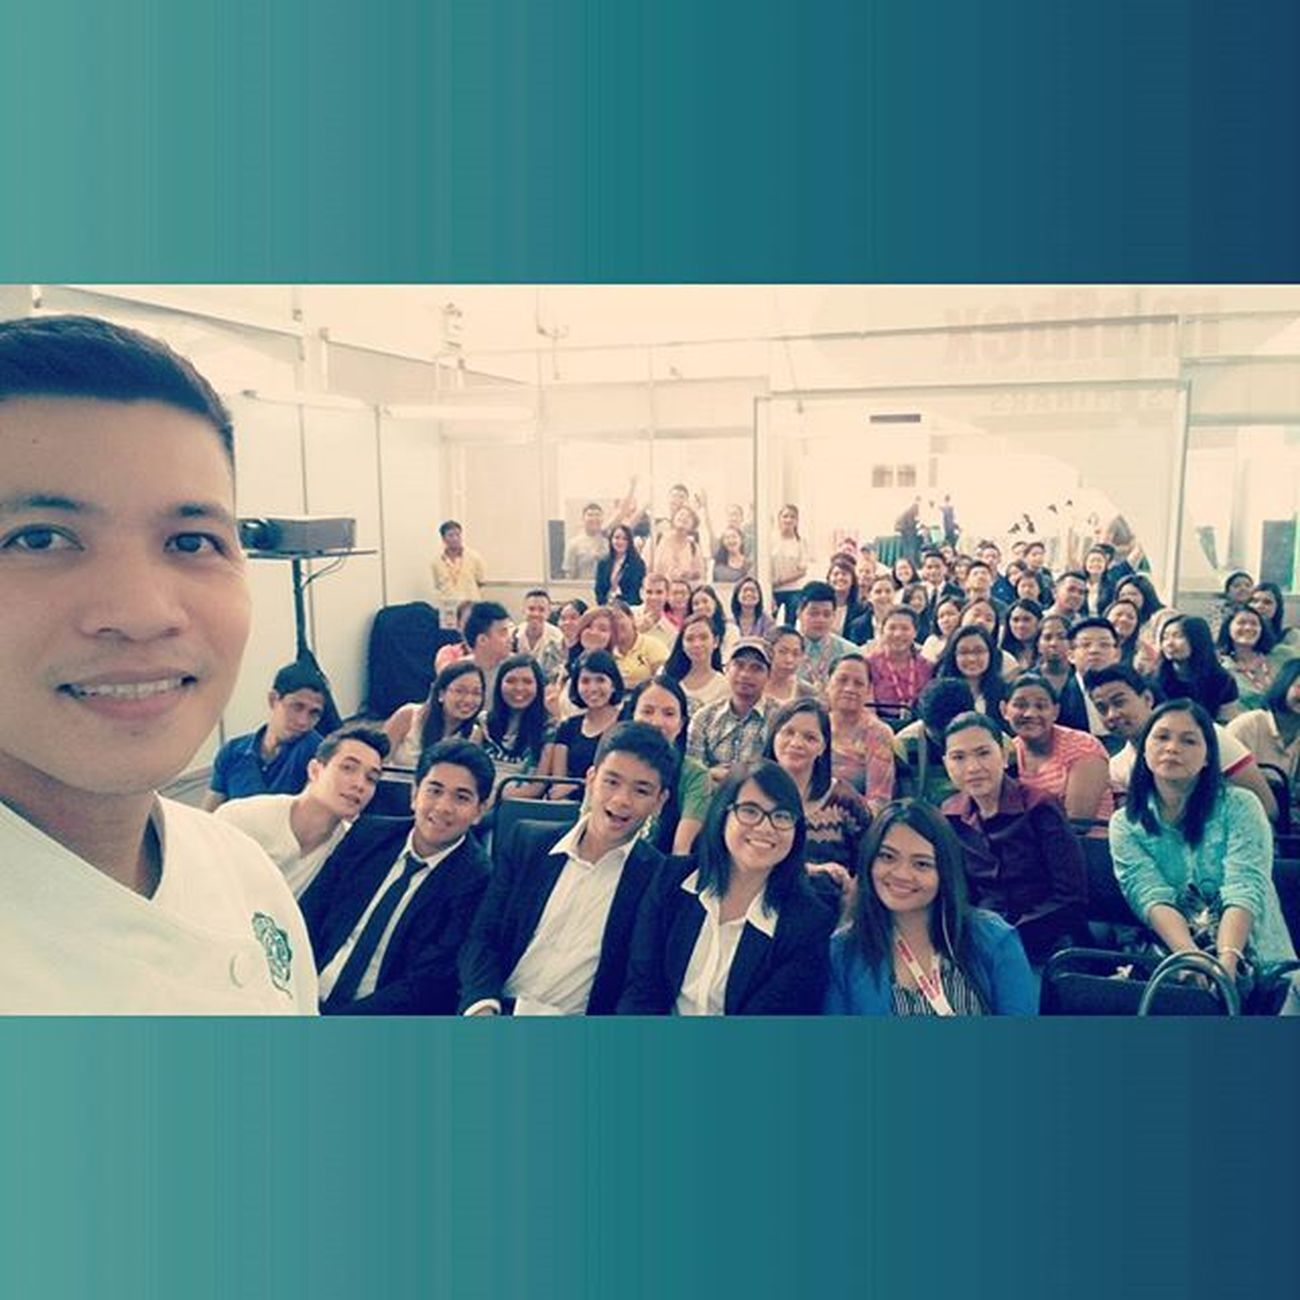 Thank you everyone for attending the Seminar on Food Styling and Photography Oscarselfie 📷 🍴 . . . MAFBEX YHE 9thMAFBEX 43rdYHE foodstyling foodphotography themanansala